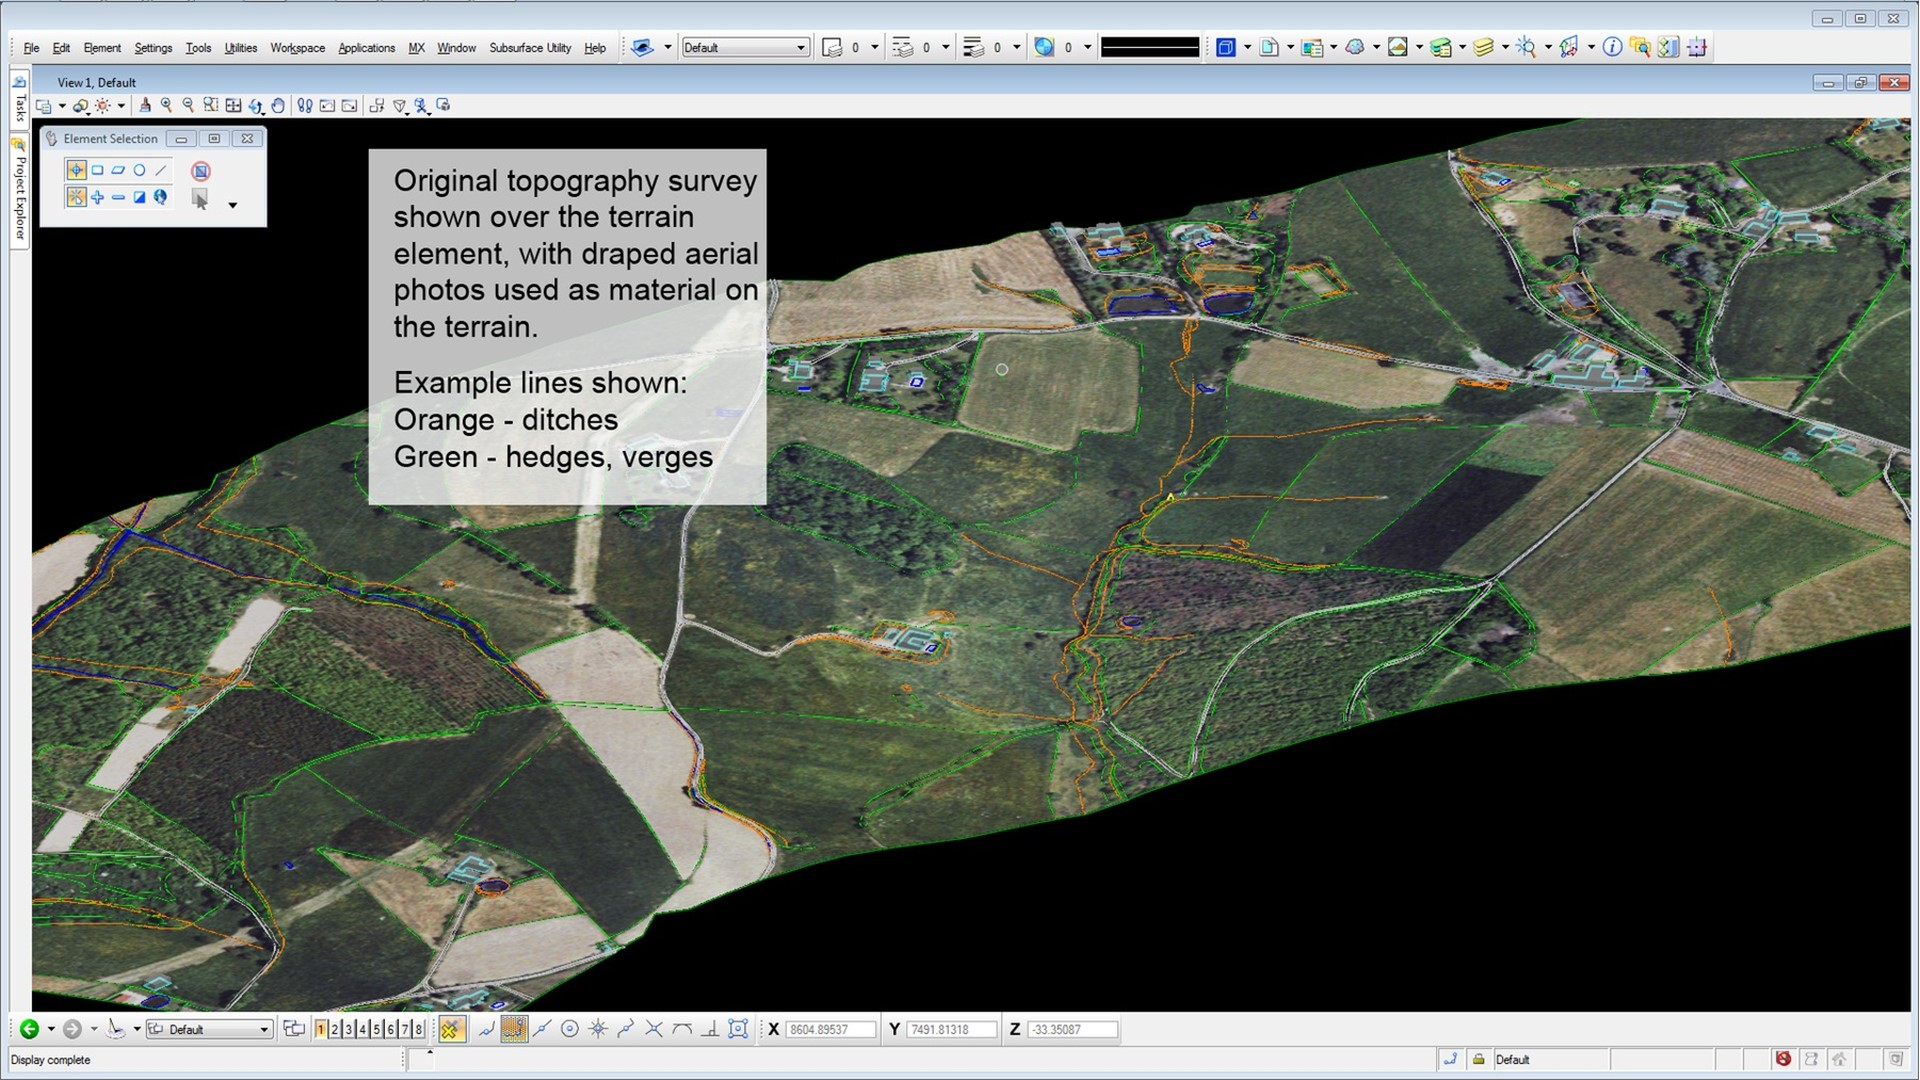 Incorporate topography and aerial imagery_EDITED